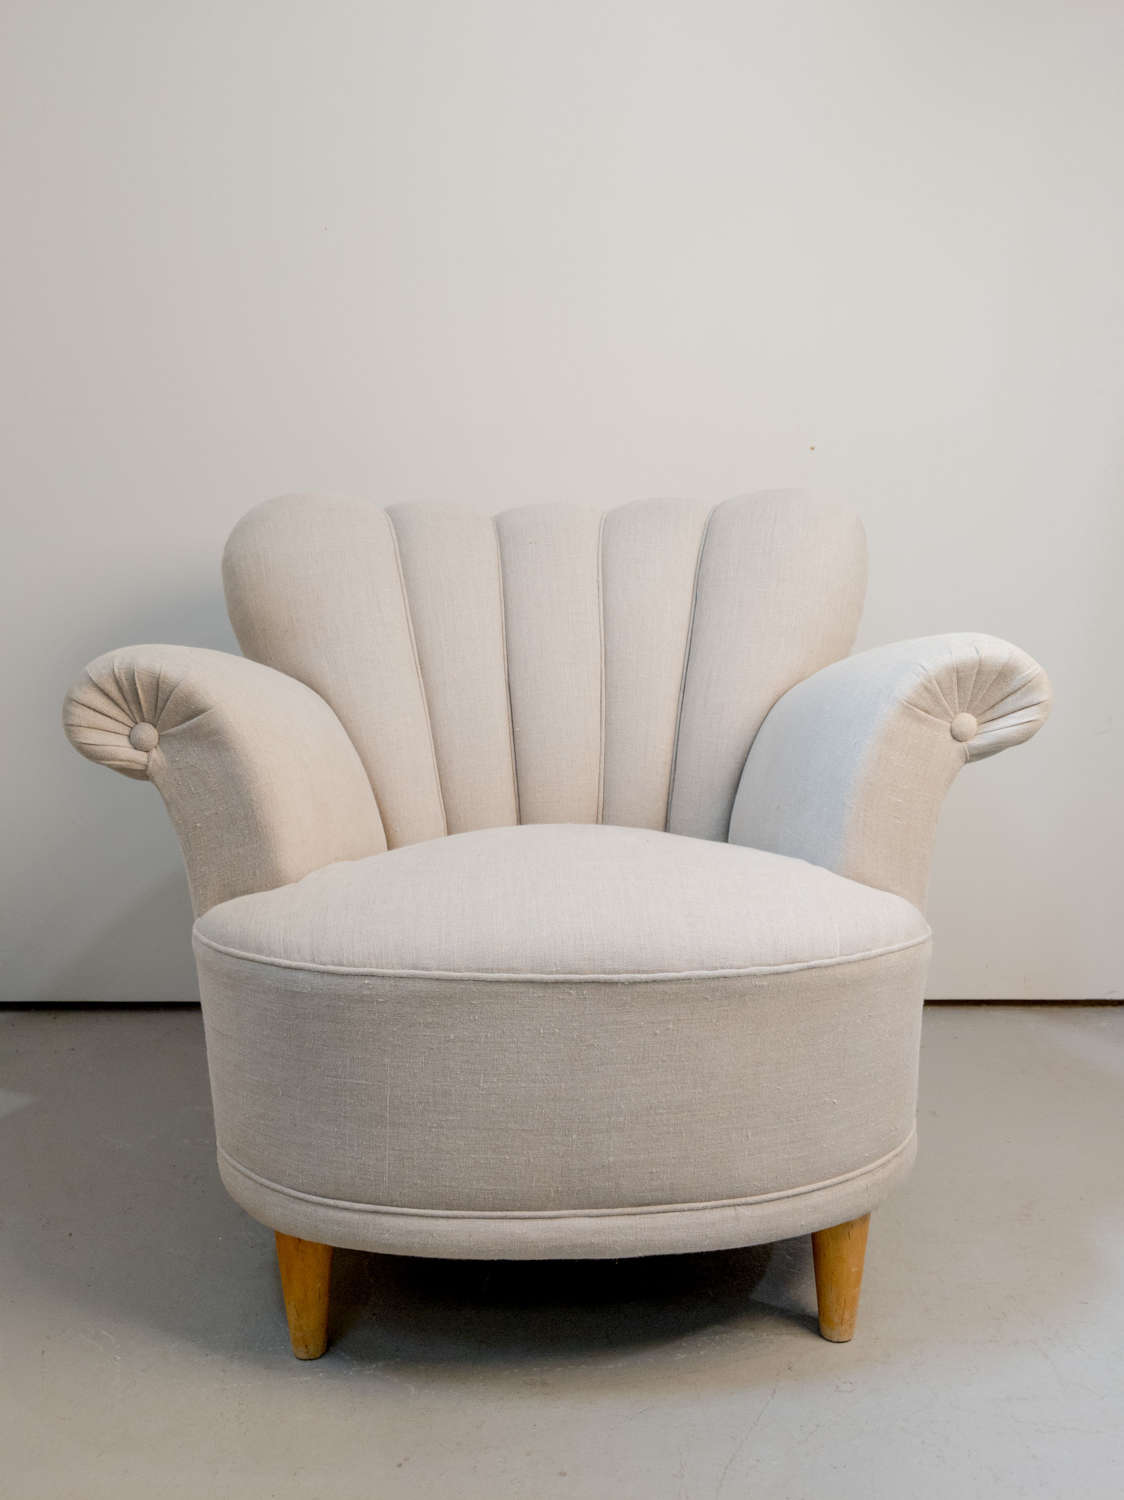 Circa 1950's French chair